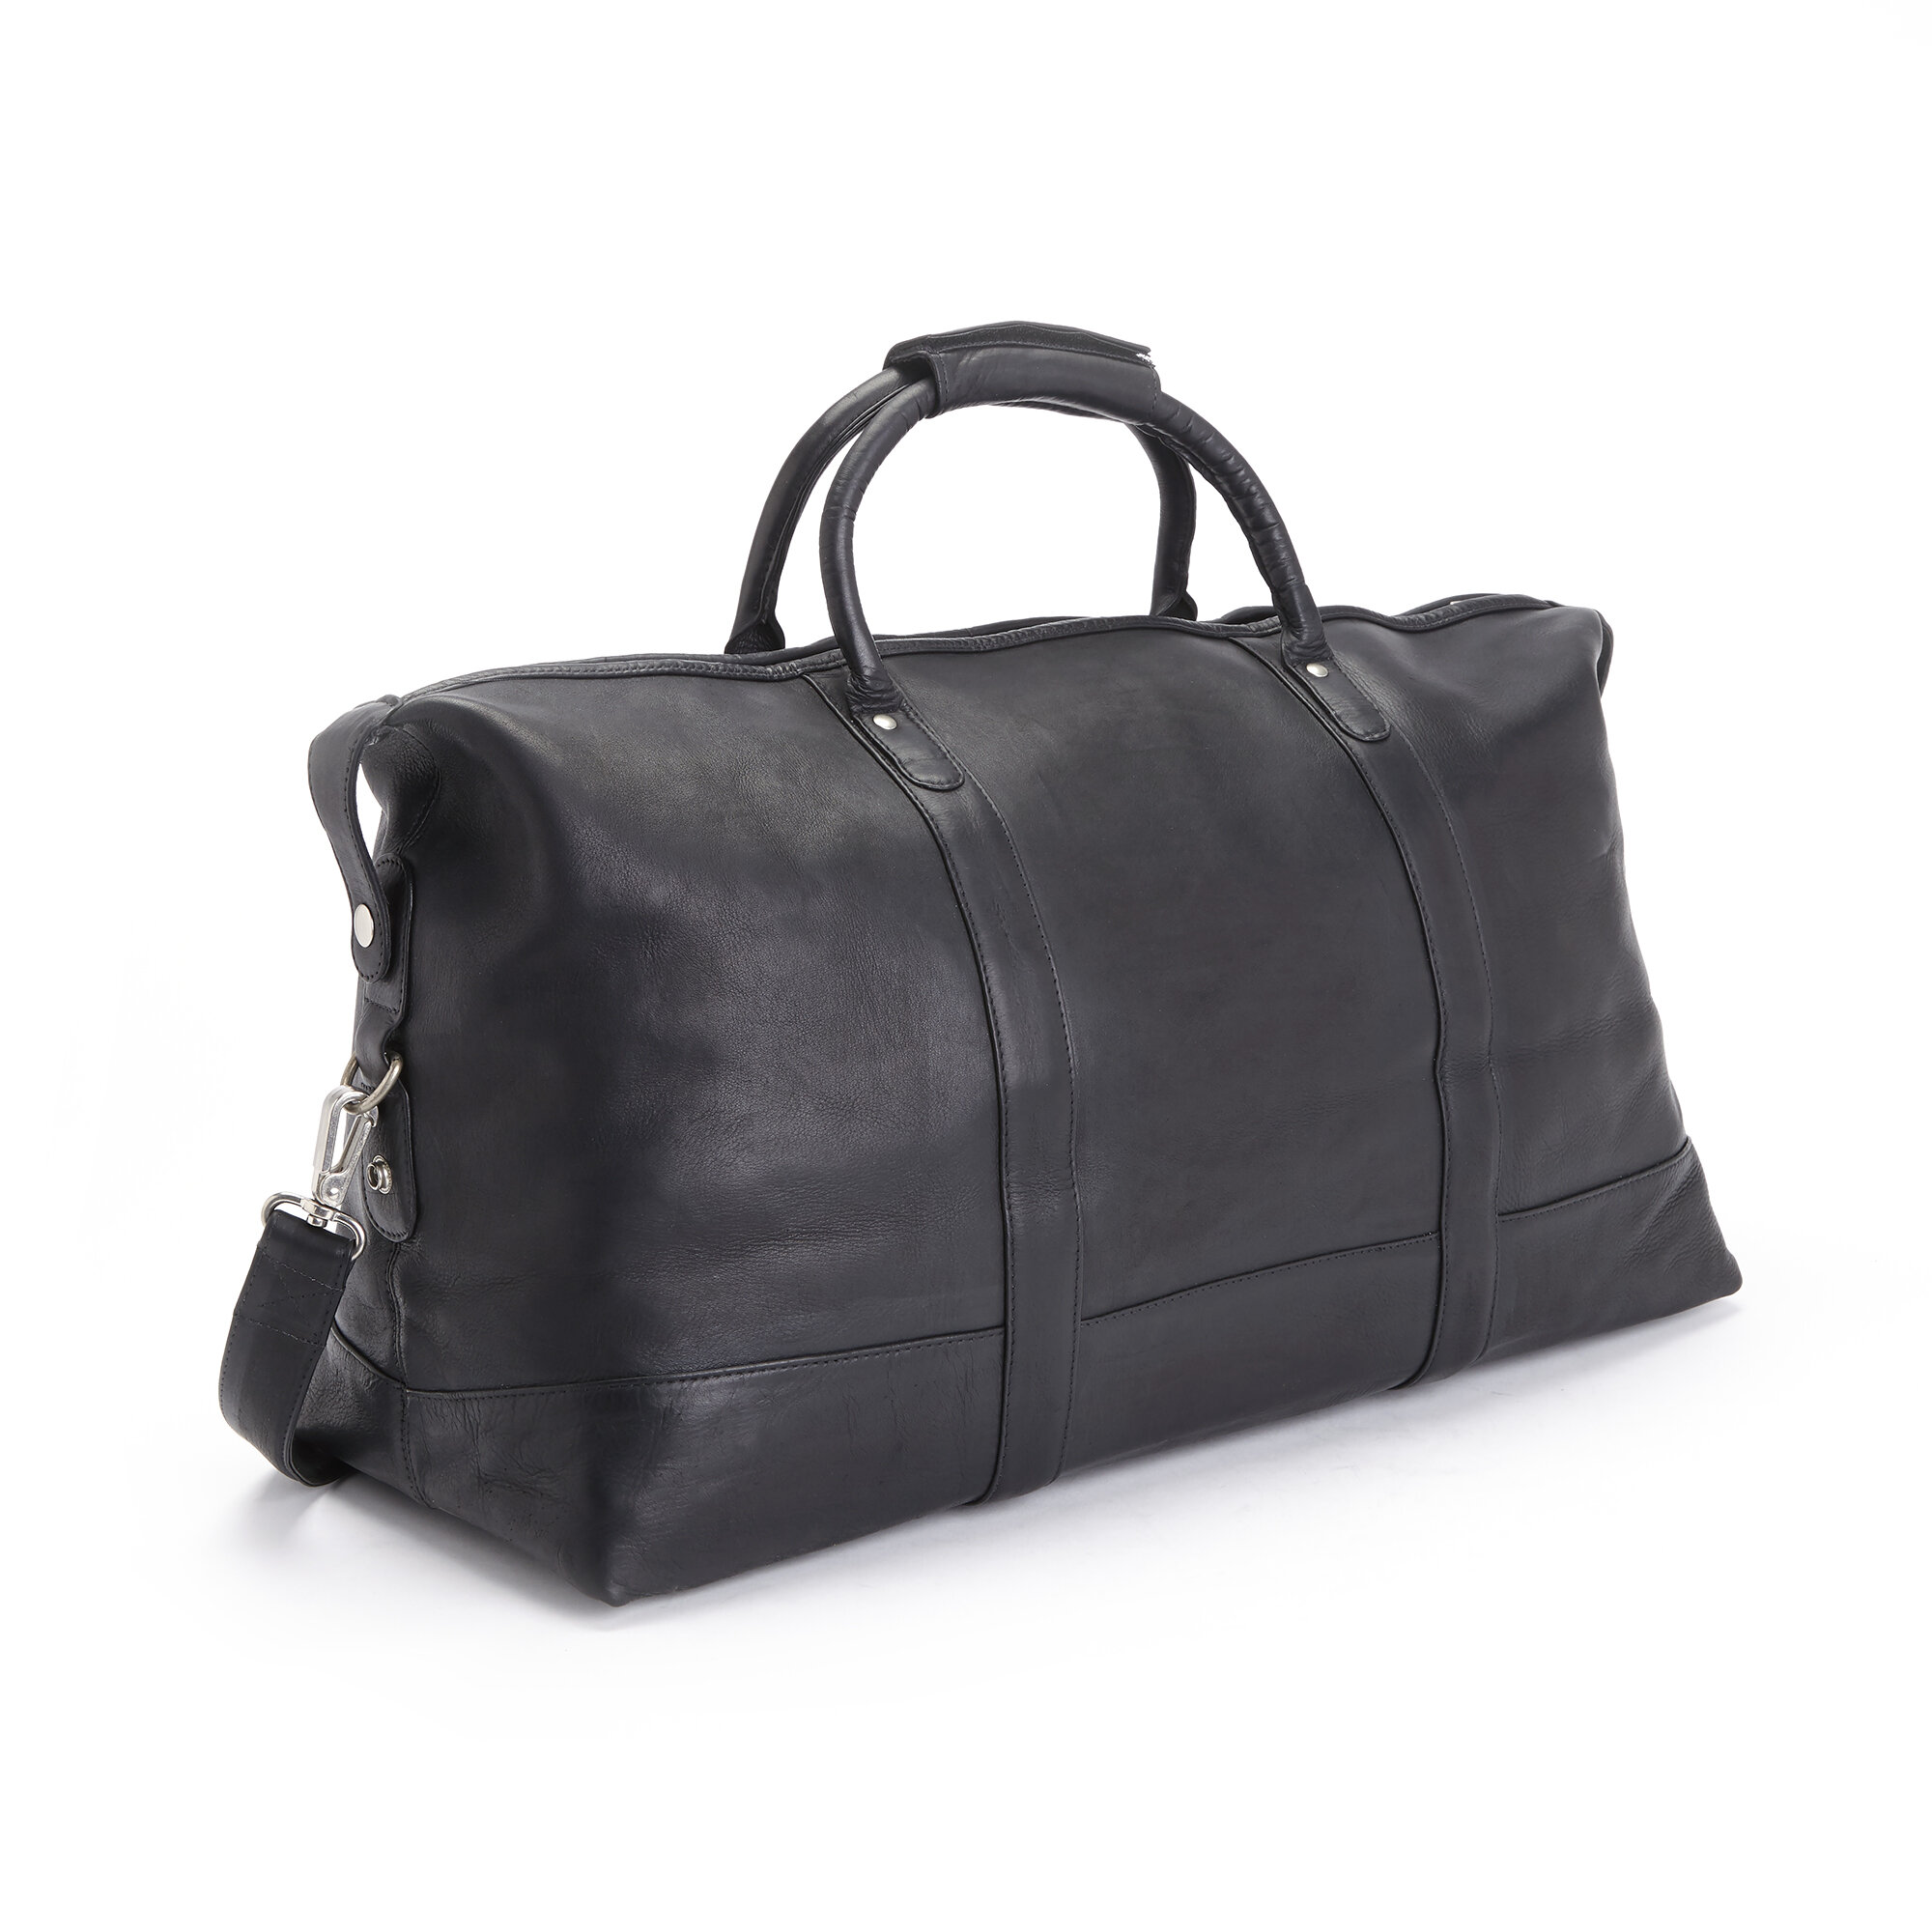 Royce Leather Luxury Overnighter Duffel Bag Luggage Handcrafted in Leather Black One Size